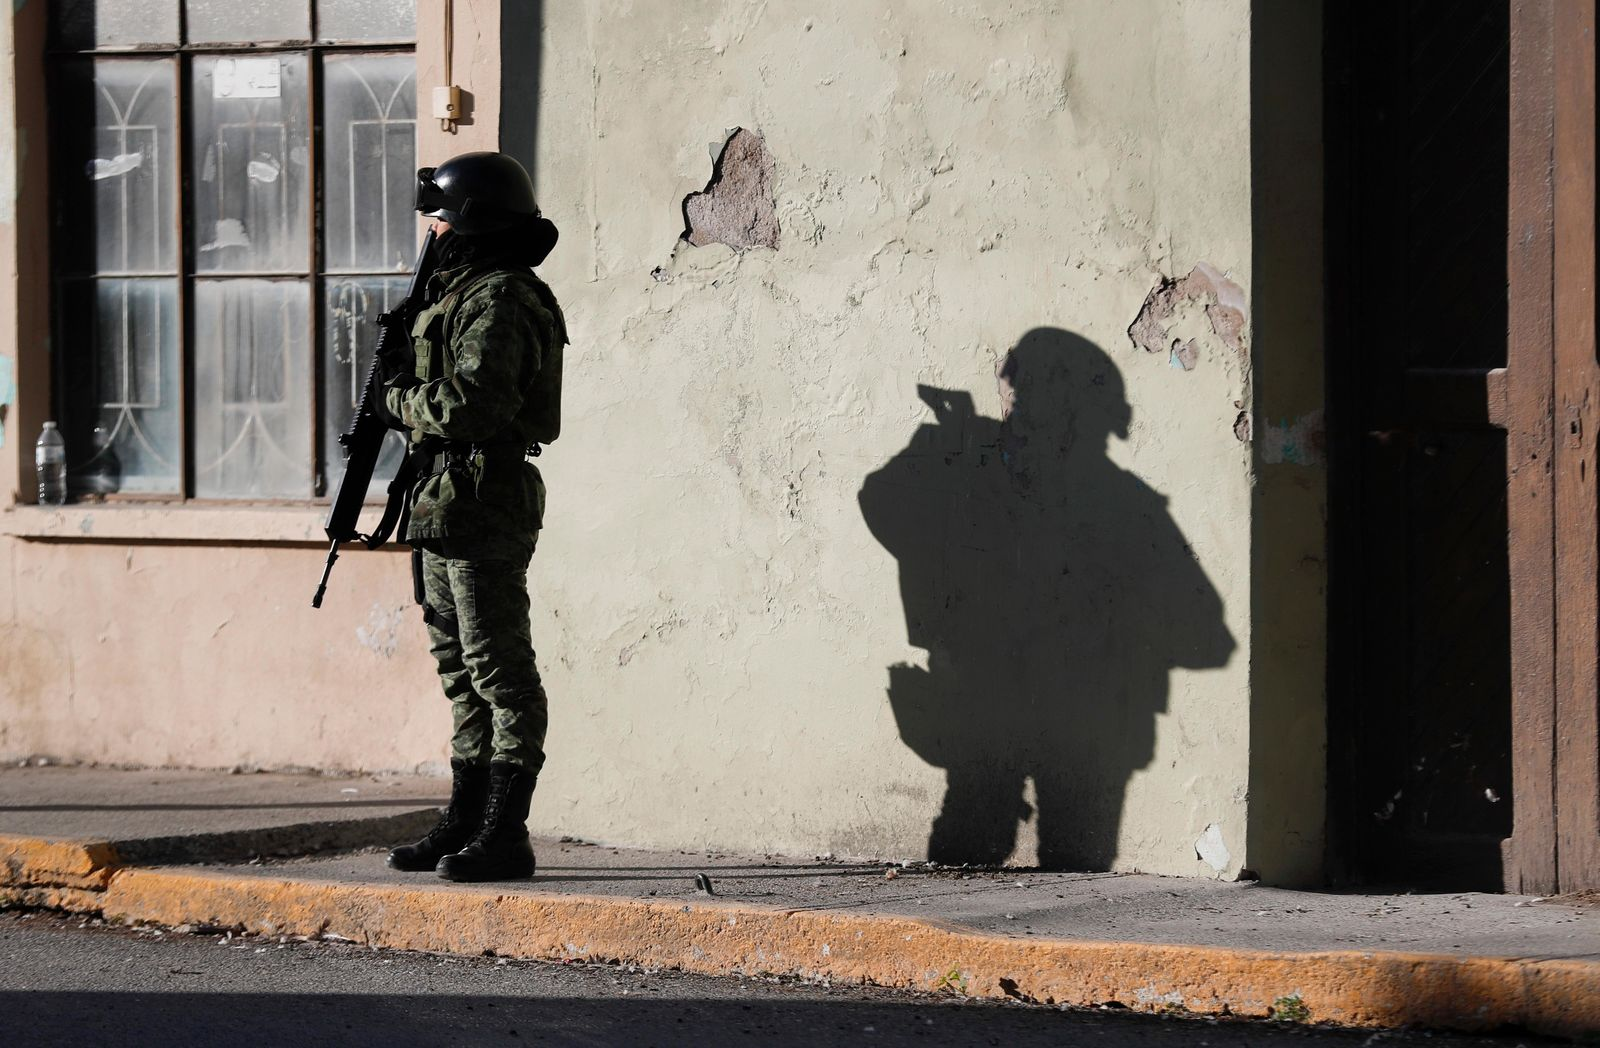 "A member of the Mexican security forces stands guard near City Hall in Villa Union, Mexico, Tuesday, Dec. 3, 2019. Some long for the days when Mexican marines successfully patrolled the area until President Andres Manuel Lopez Obrador reassigned them to other duties. They were known for not getting corrupted by the cartels and not yielding in battle with them. ""The marines are the only ones I trust,"" said one local mechanic. ""The rest are going to take a bribe.""  (AP Photo/Eduardo Verdugo)"